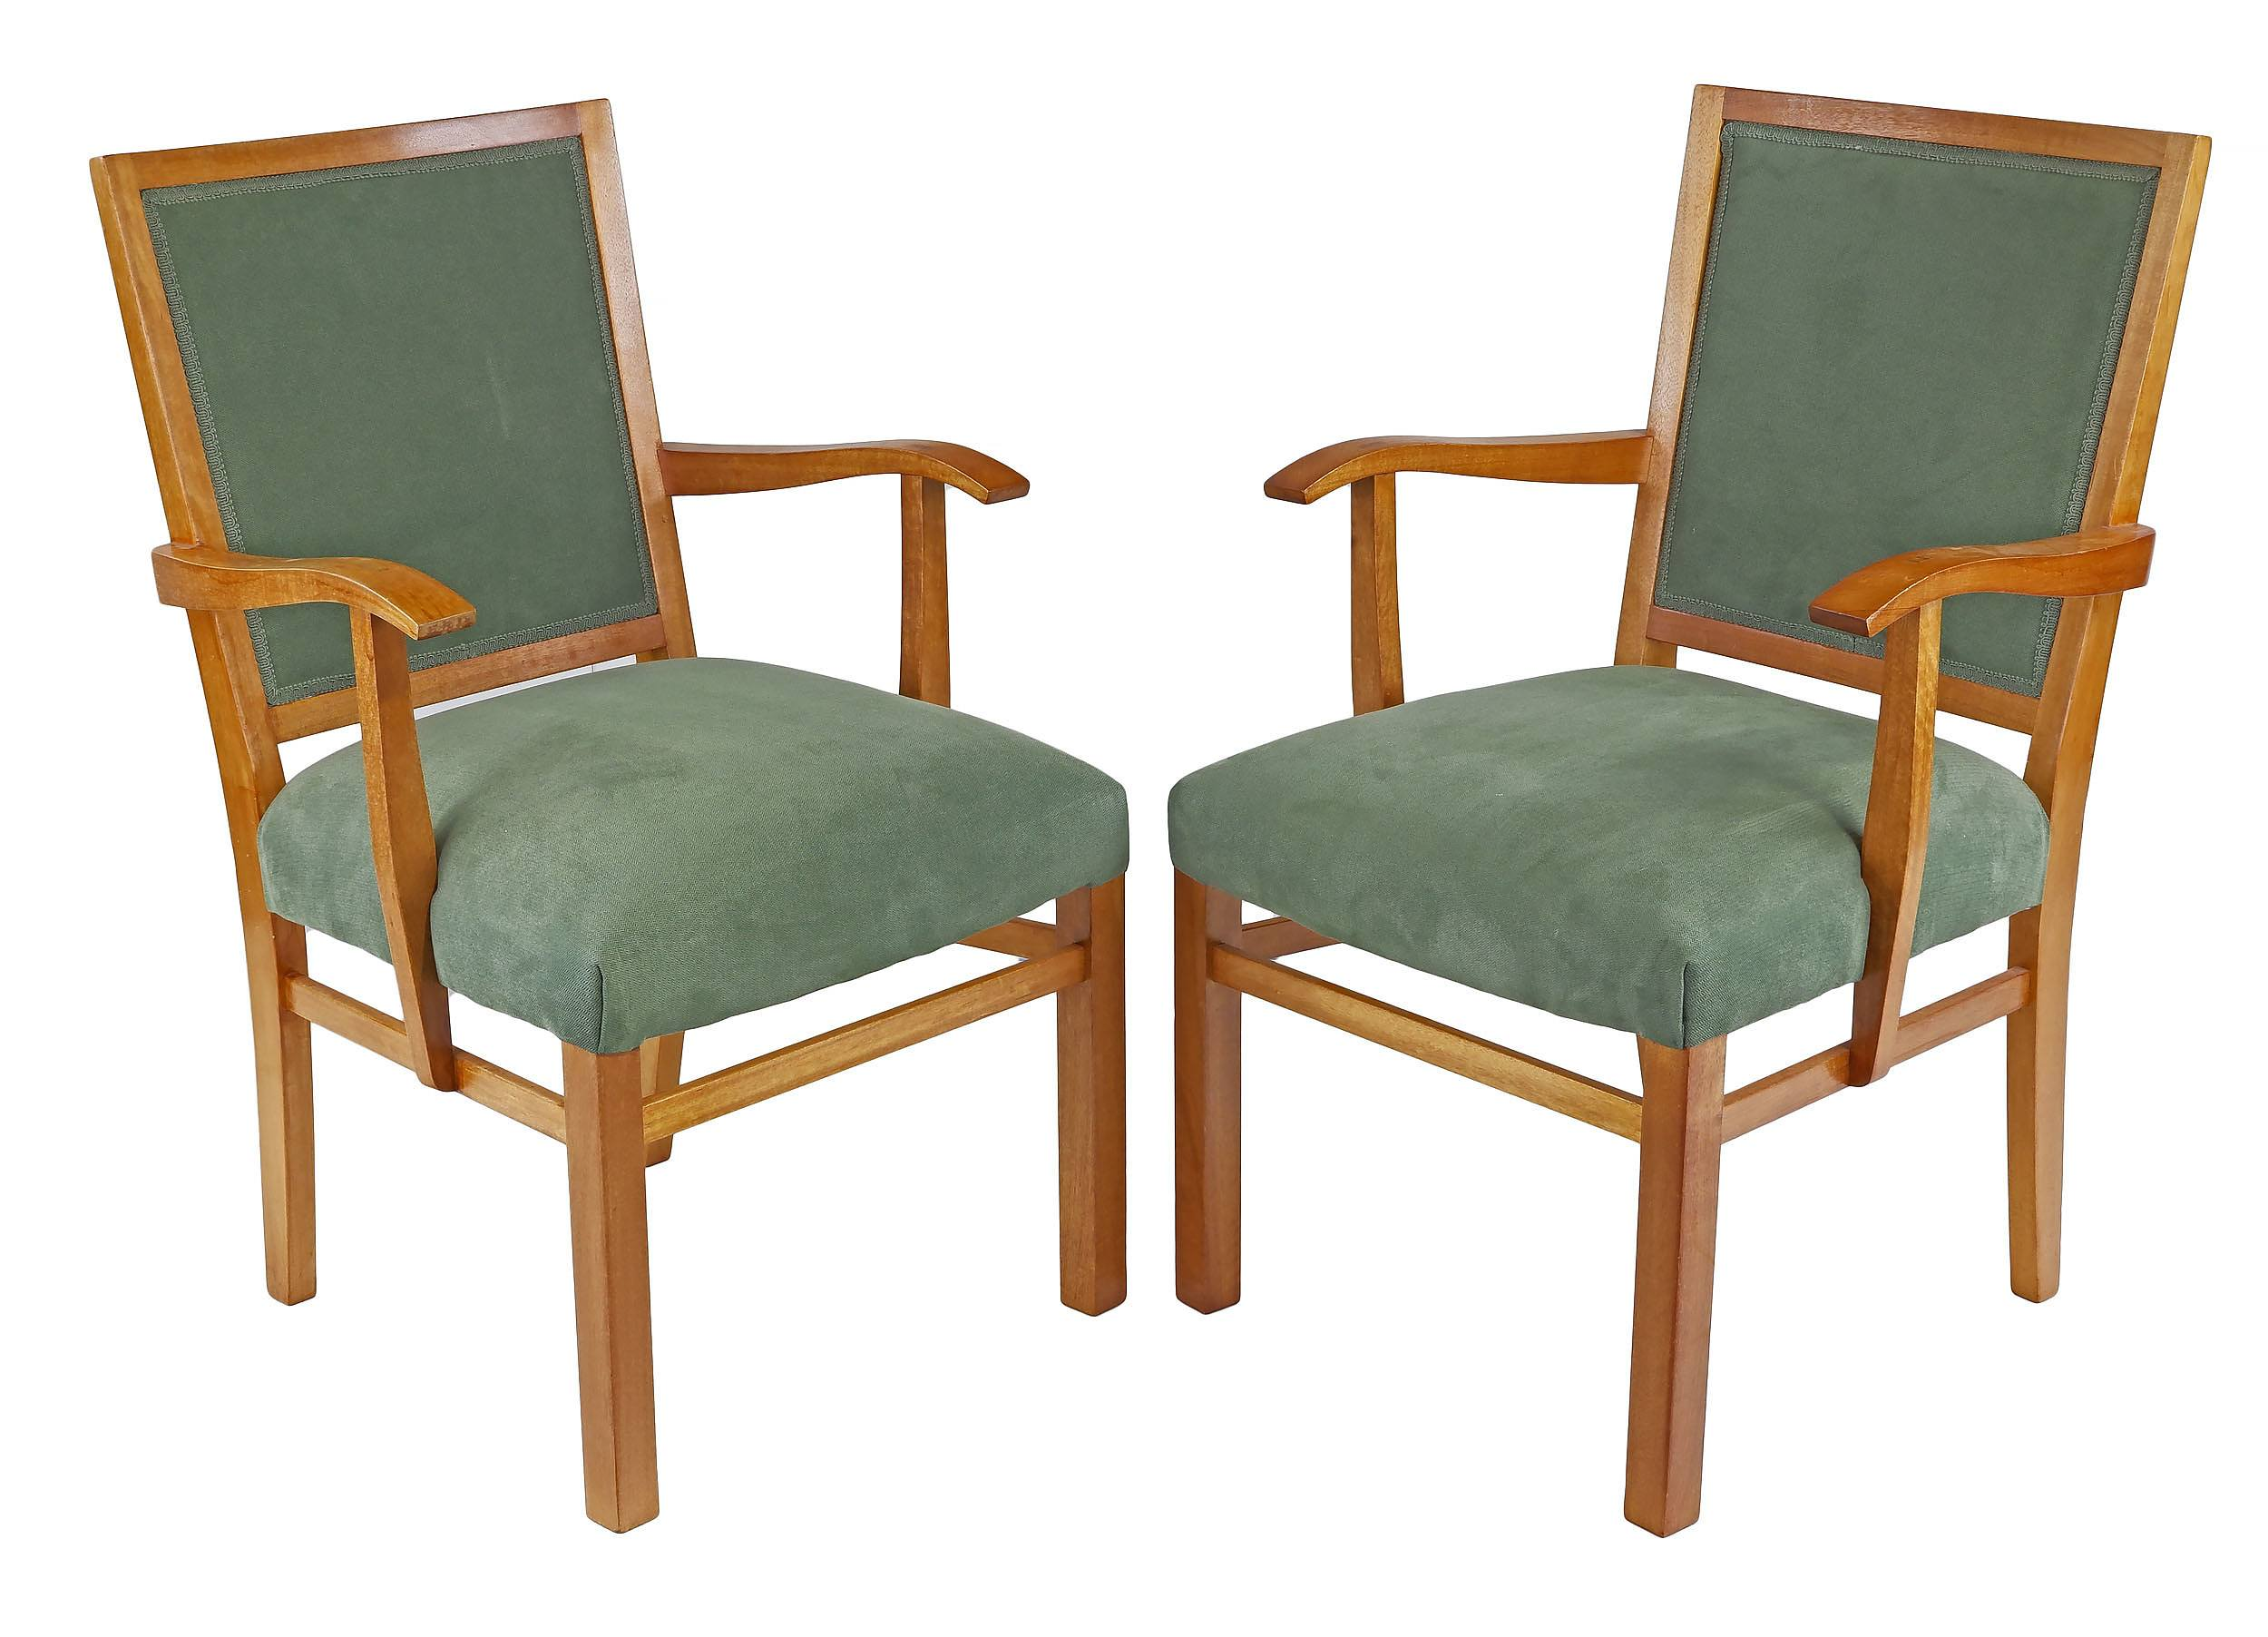 'Pair of Fred Ward Maple Armchairs'